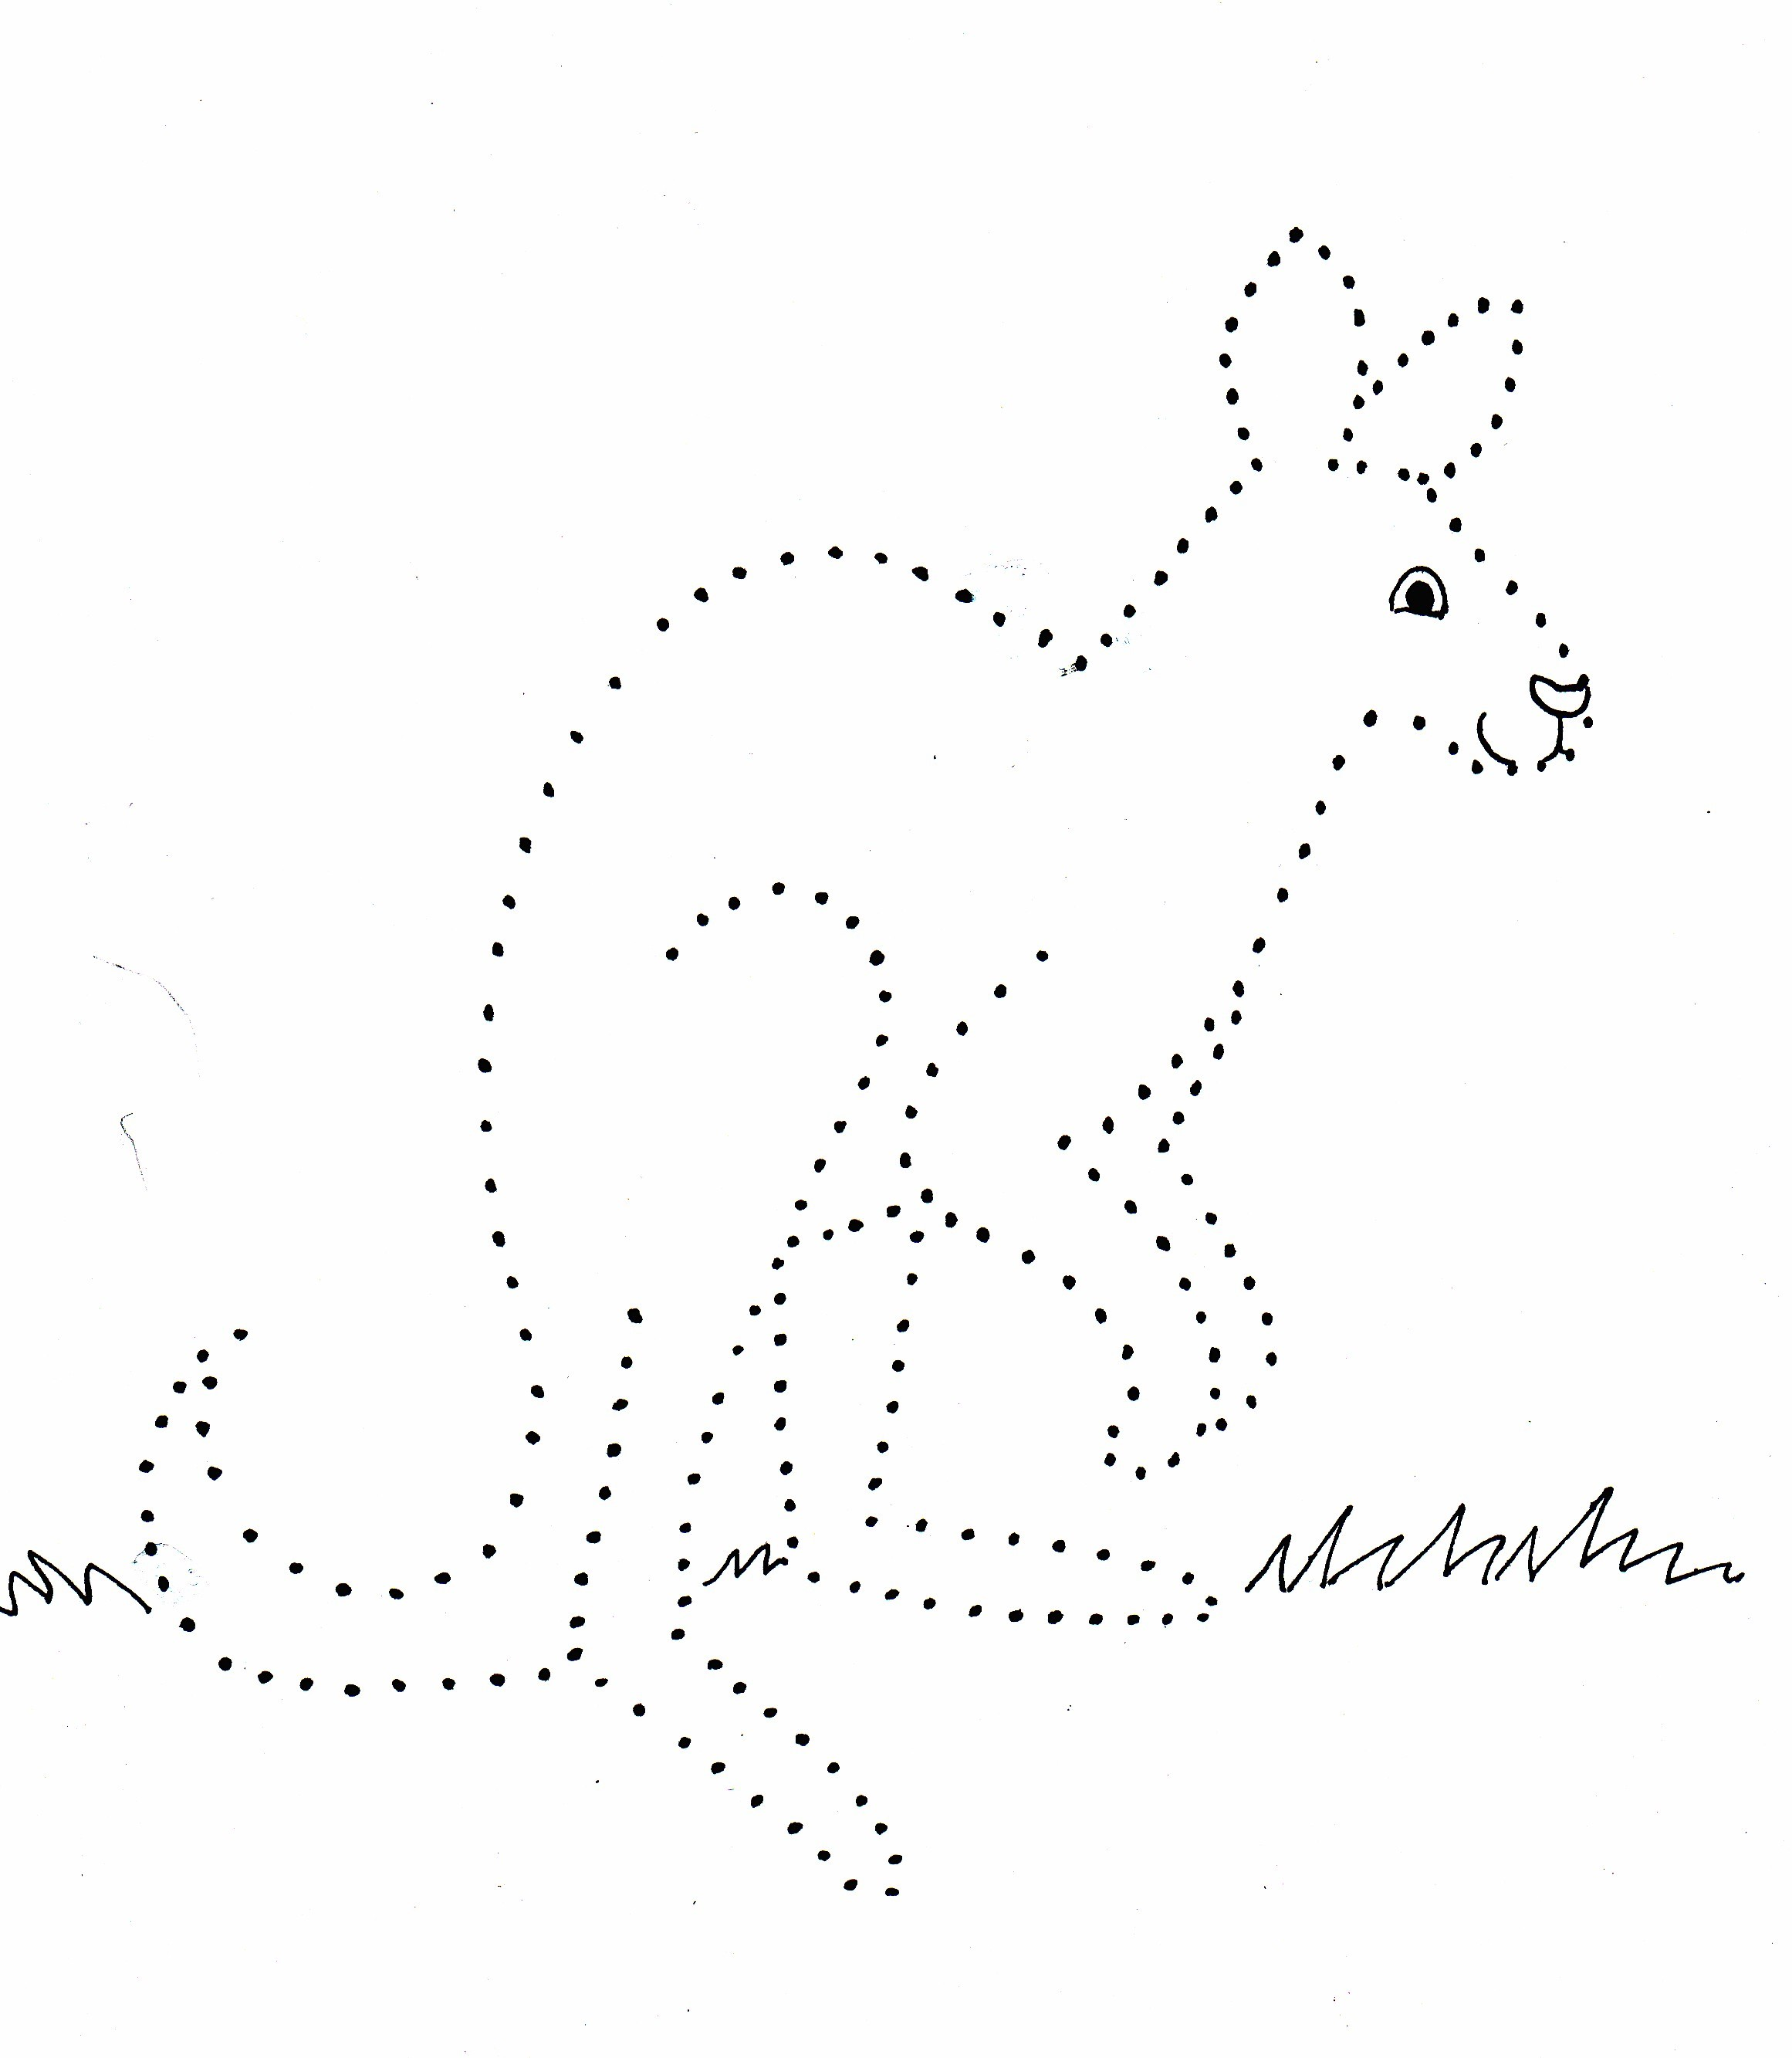 Kangaroo Dot Drawing